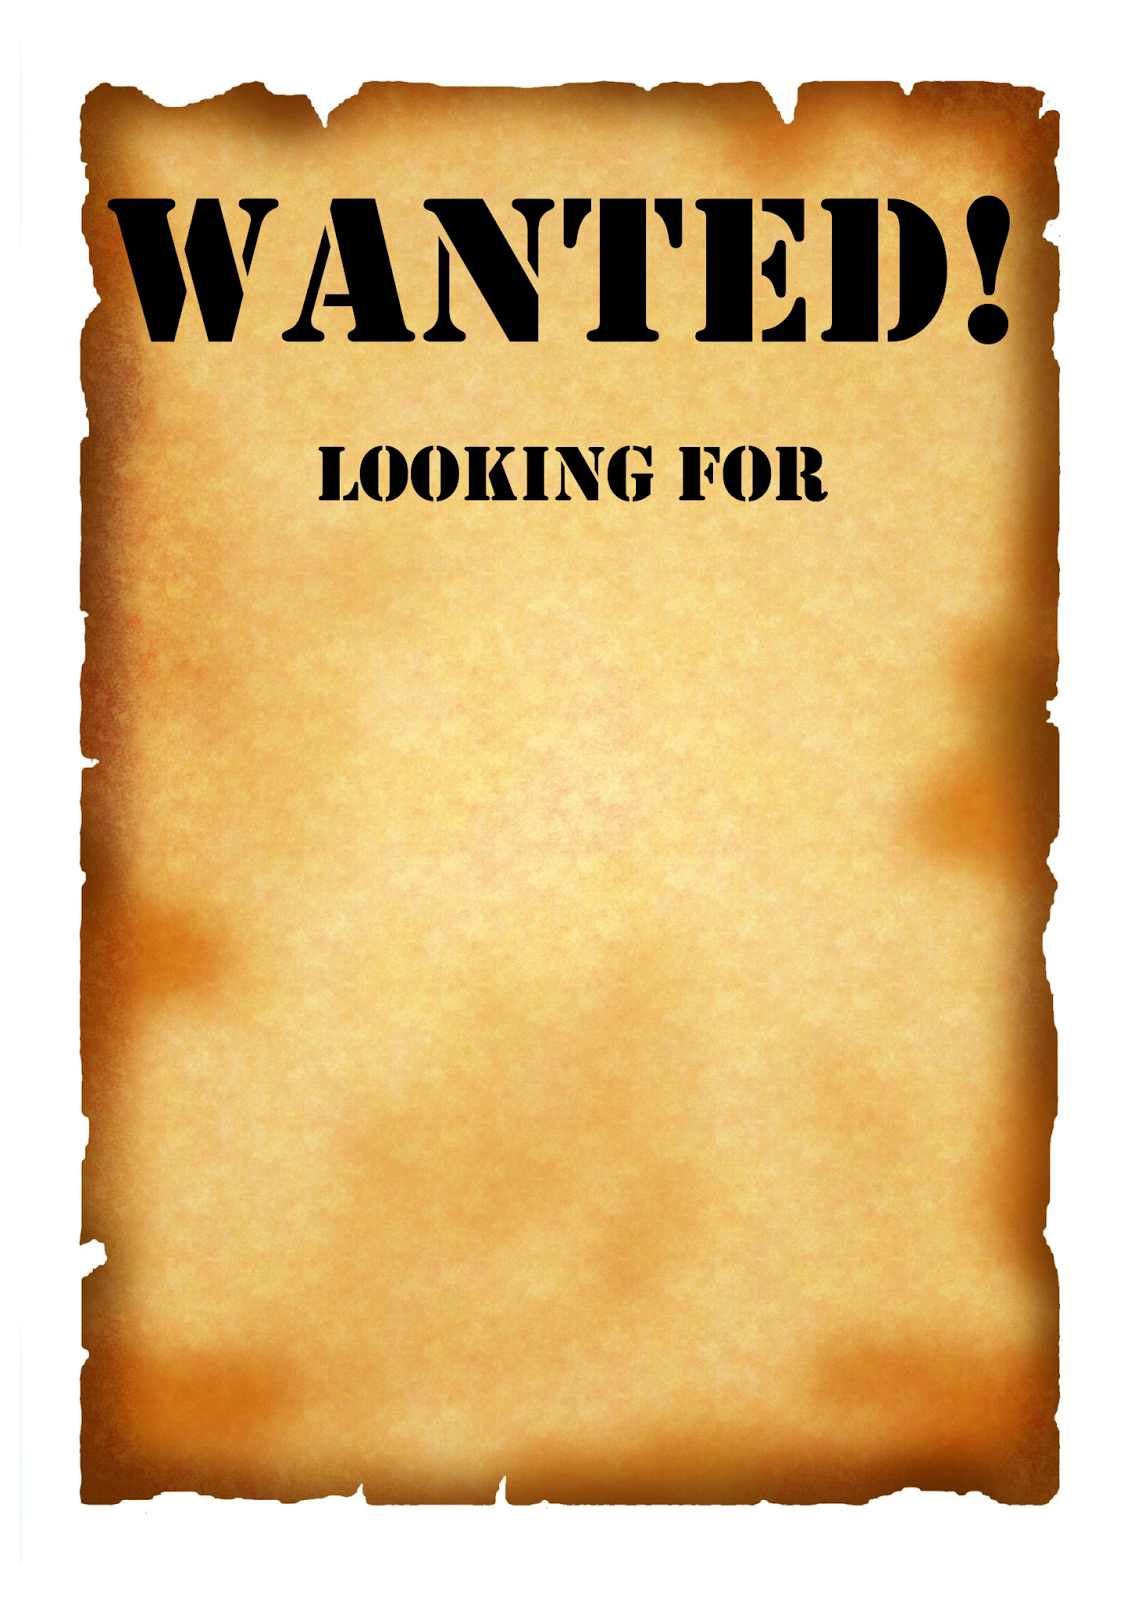 wanted - photo #22